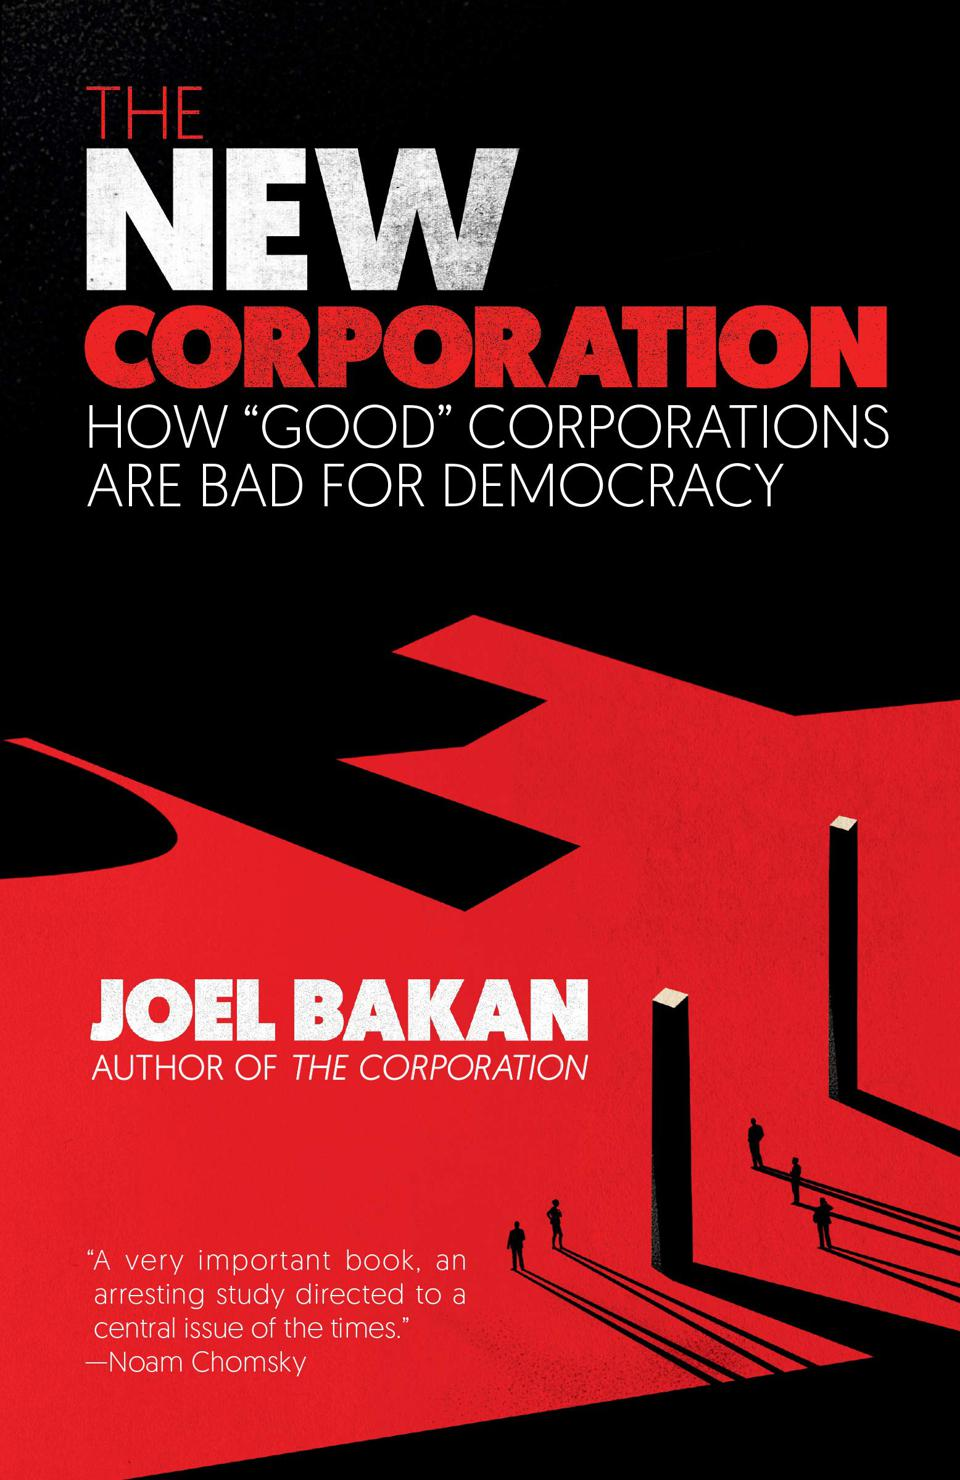 The New Corporation Book by Joel Bakan